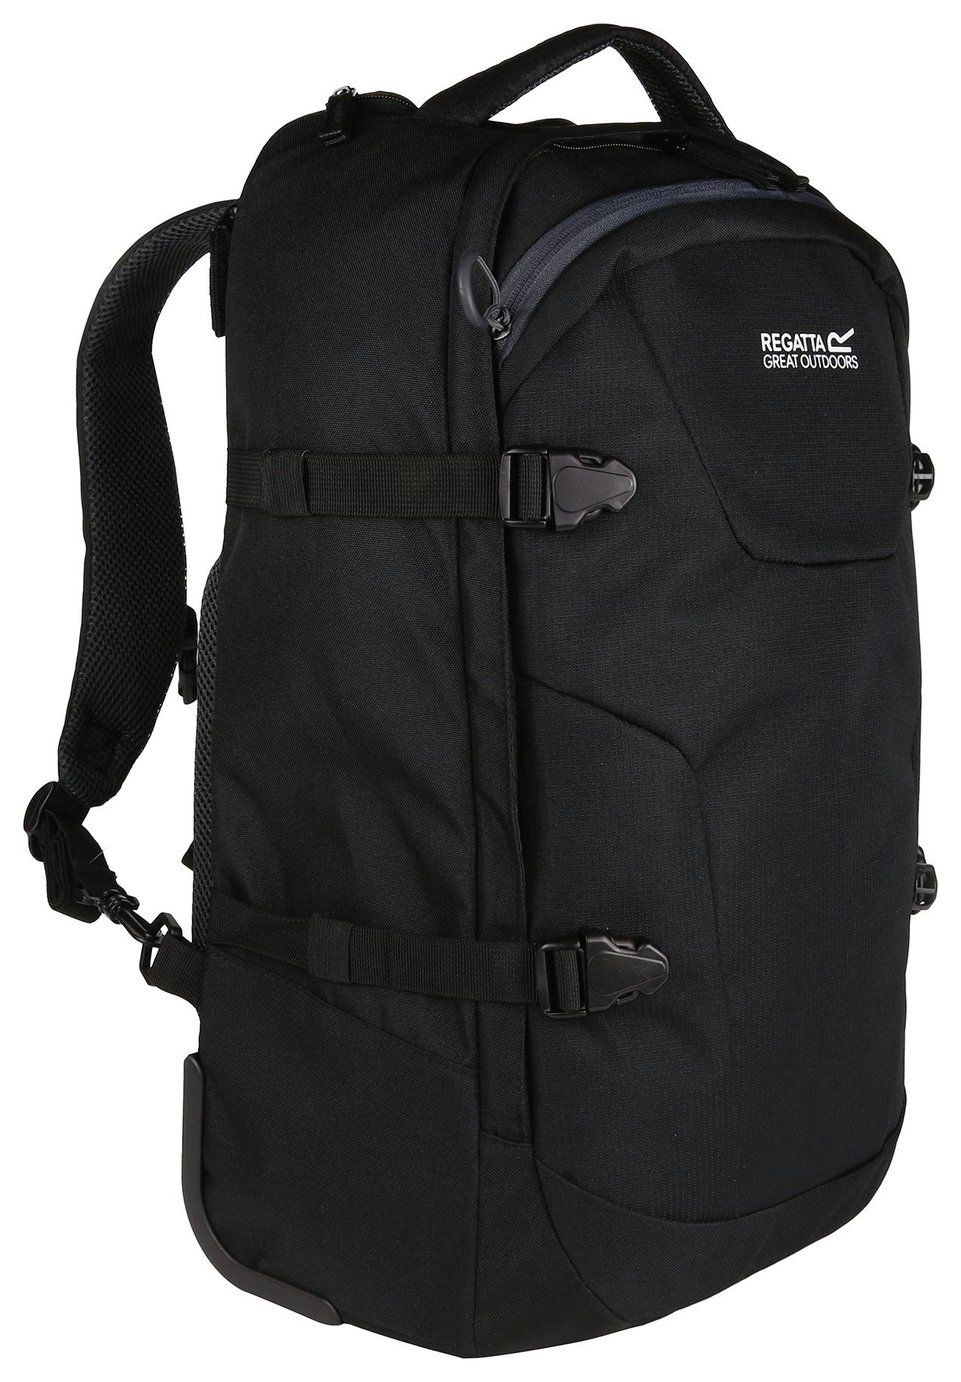 Regatta Paladen 35L Wheeled Holdall Backpack - Black